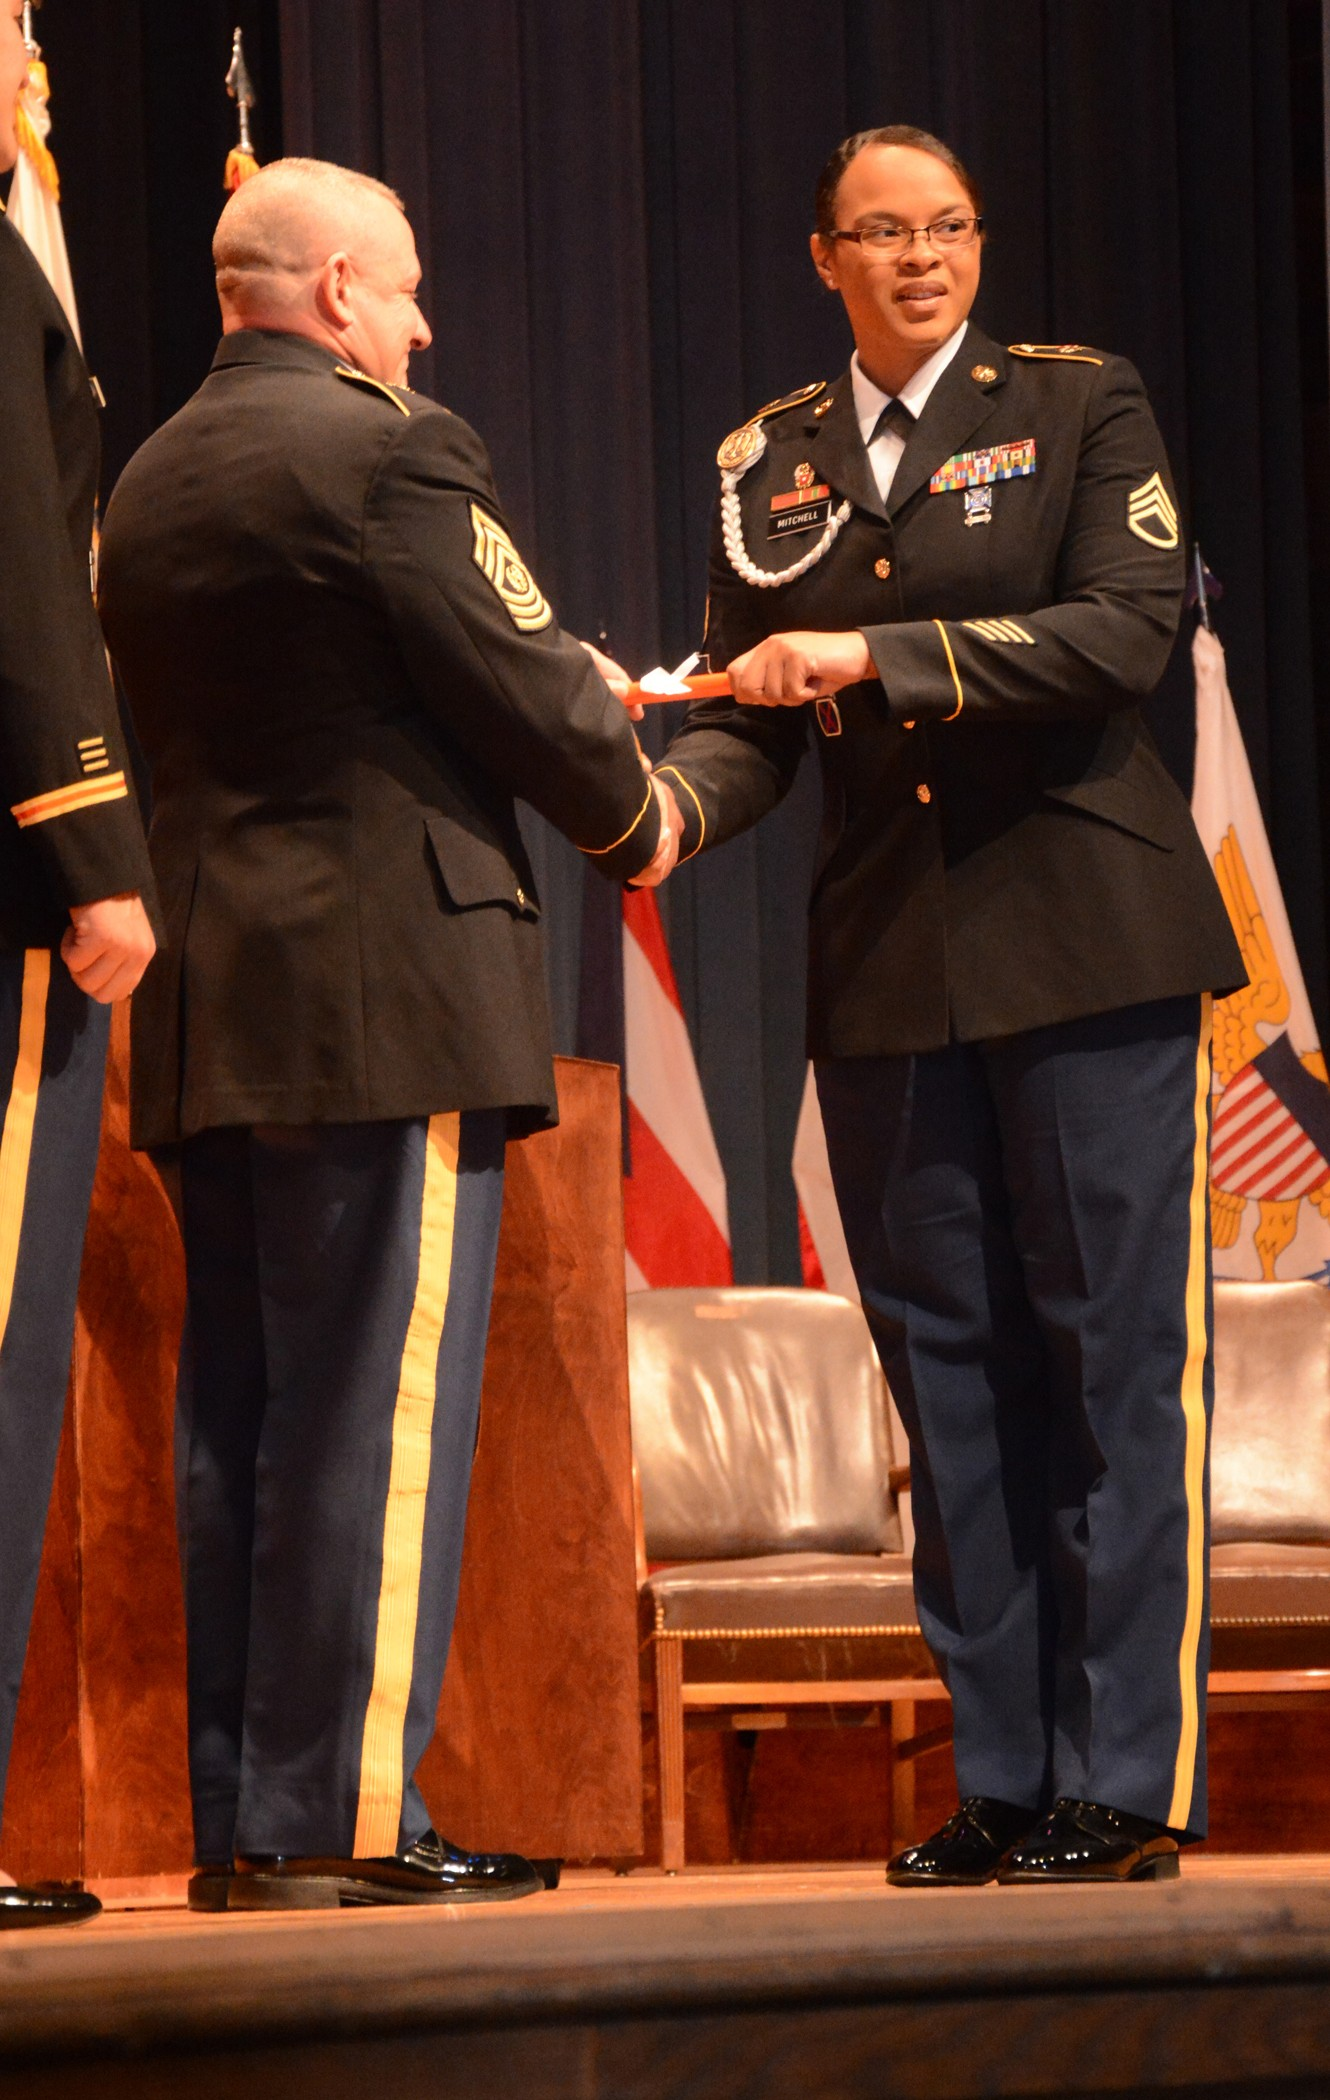 cyberspace warriors graduate army s newest military ronald pflieger u s army signal center of excellence and fort gordon regimental command sergeant major during a ceremony held nov